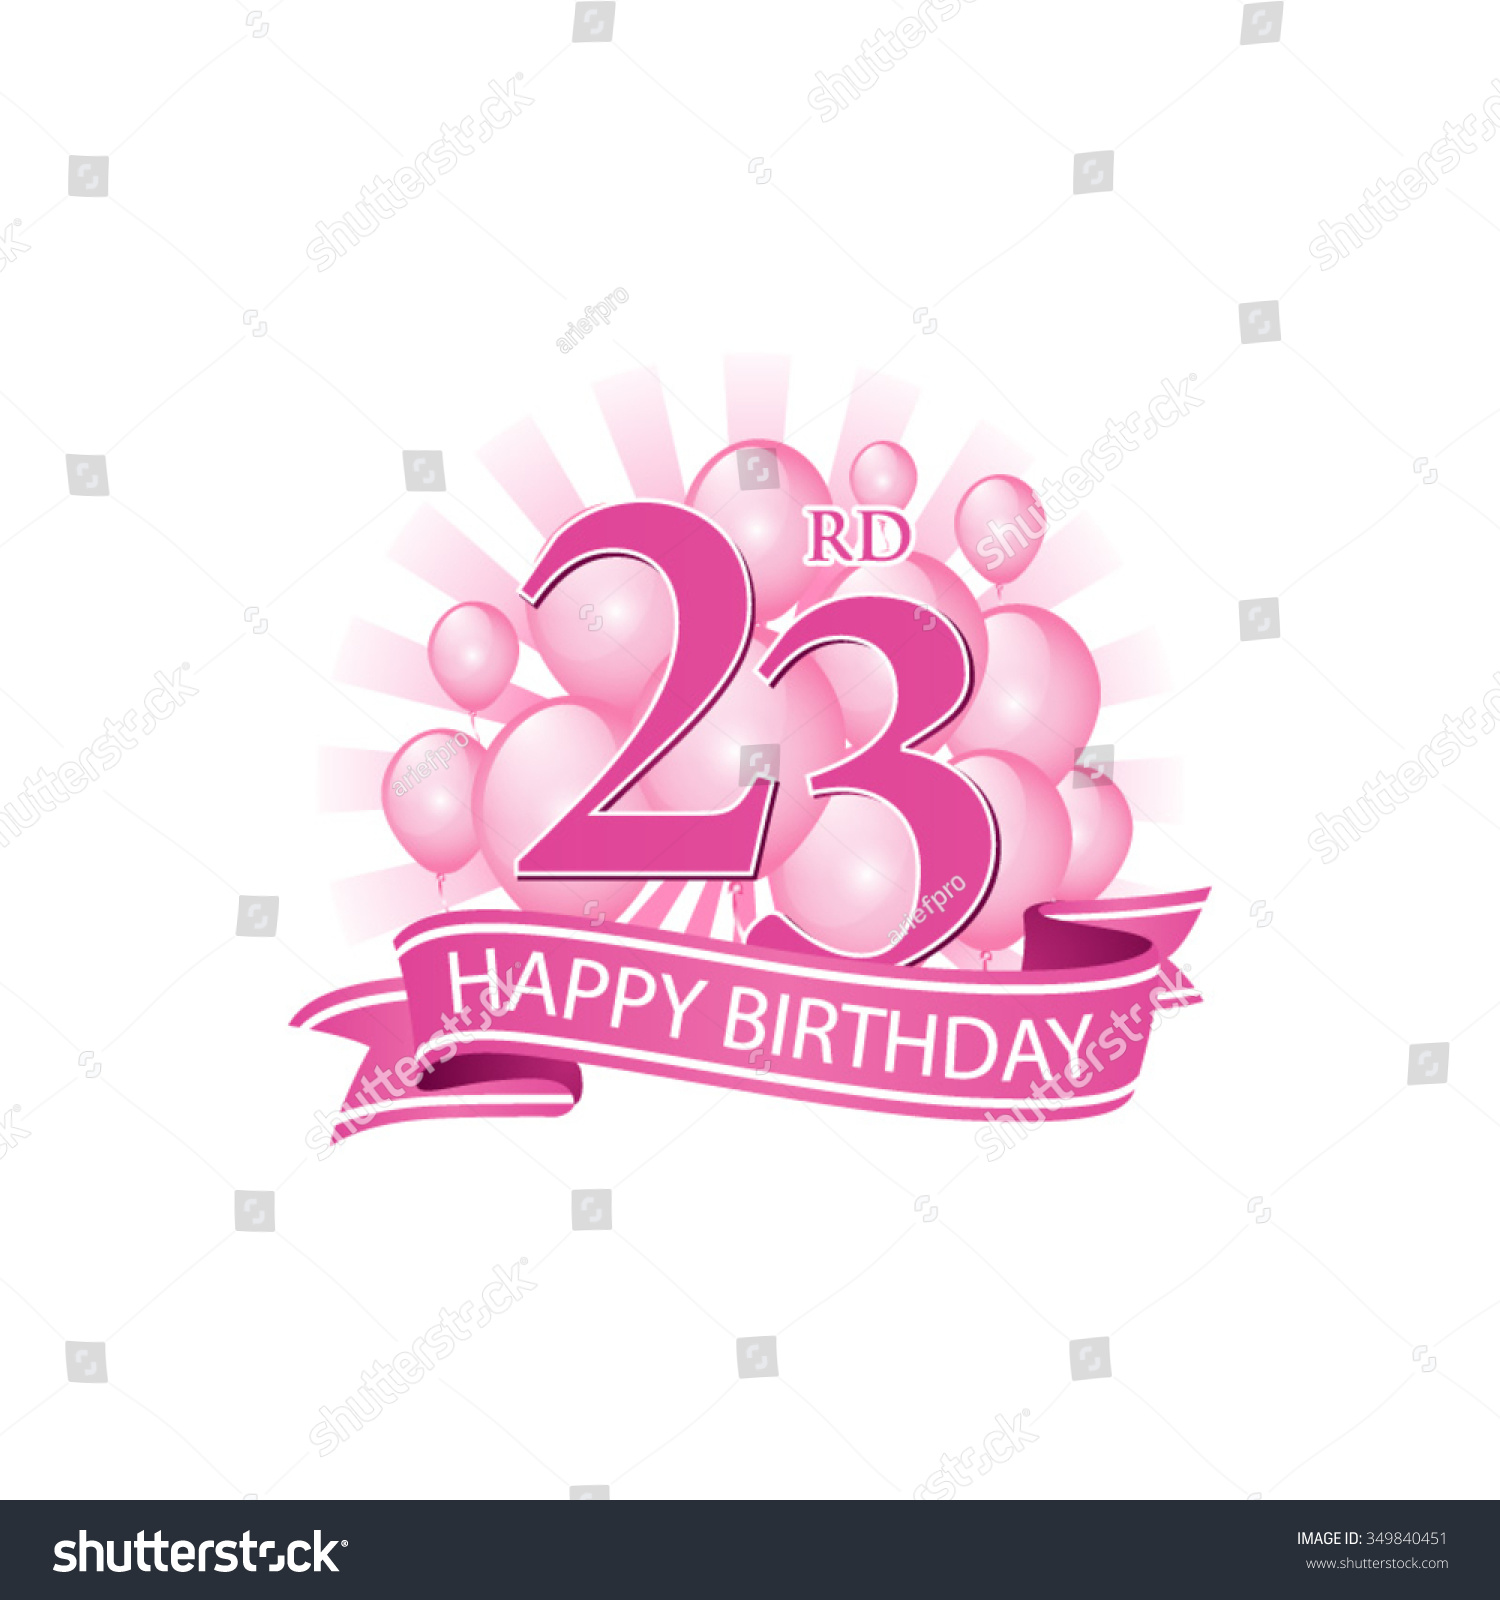 23rd Pink Happy Birthday Logo With Balloons And Burst Of Light